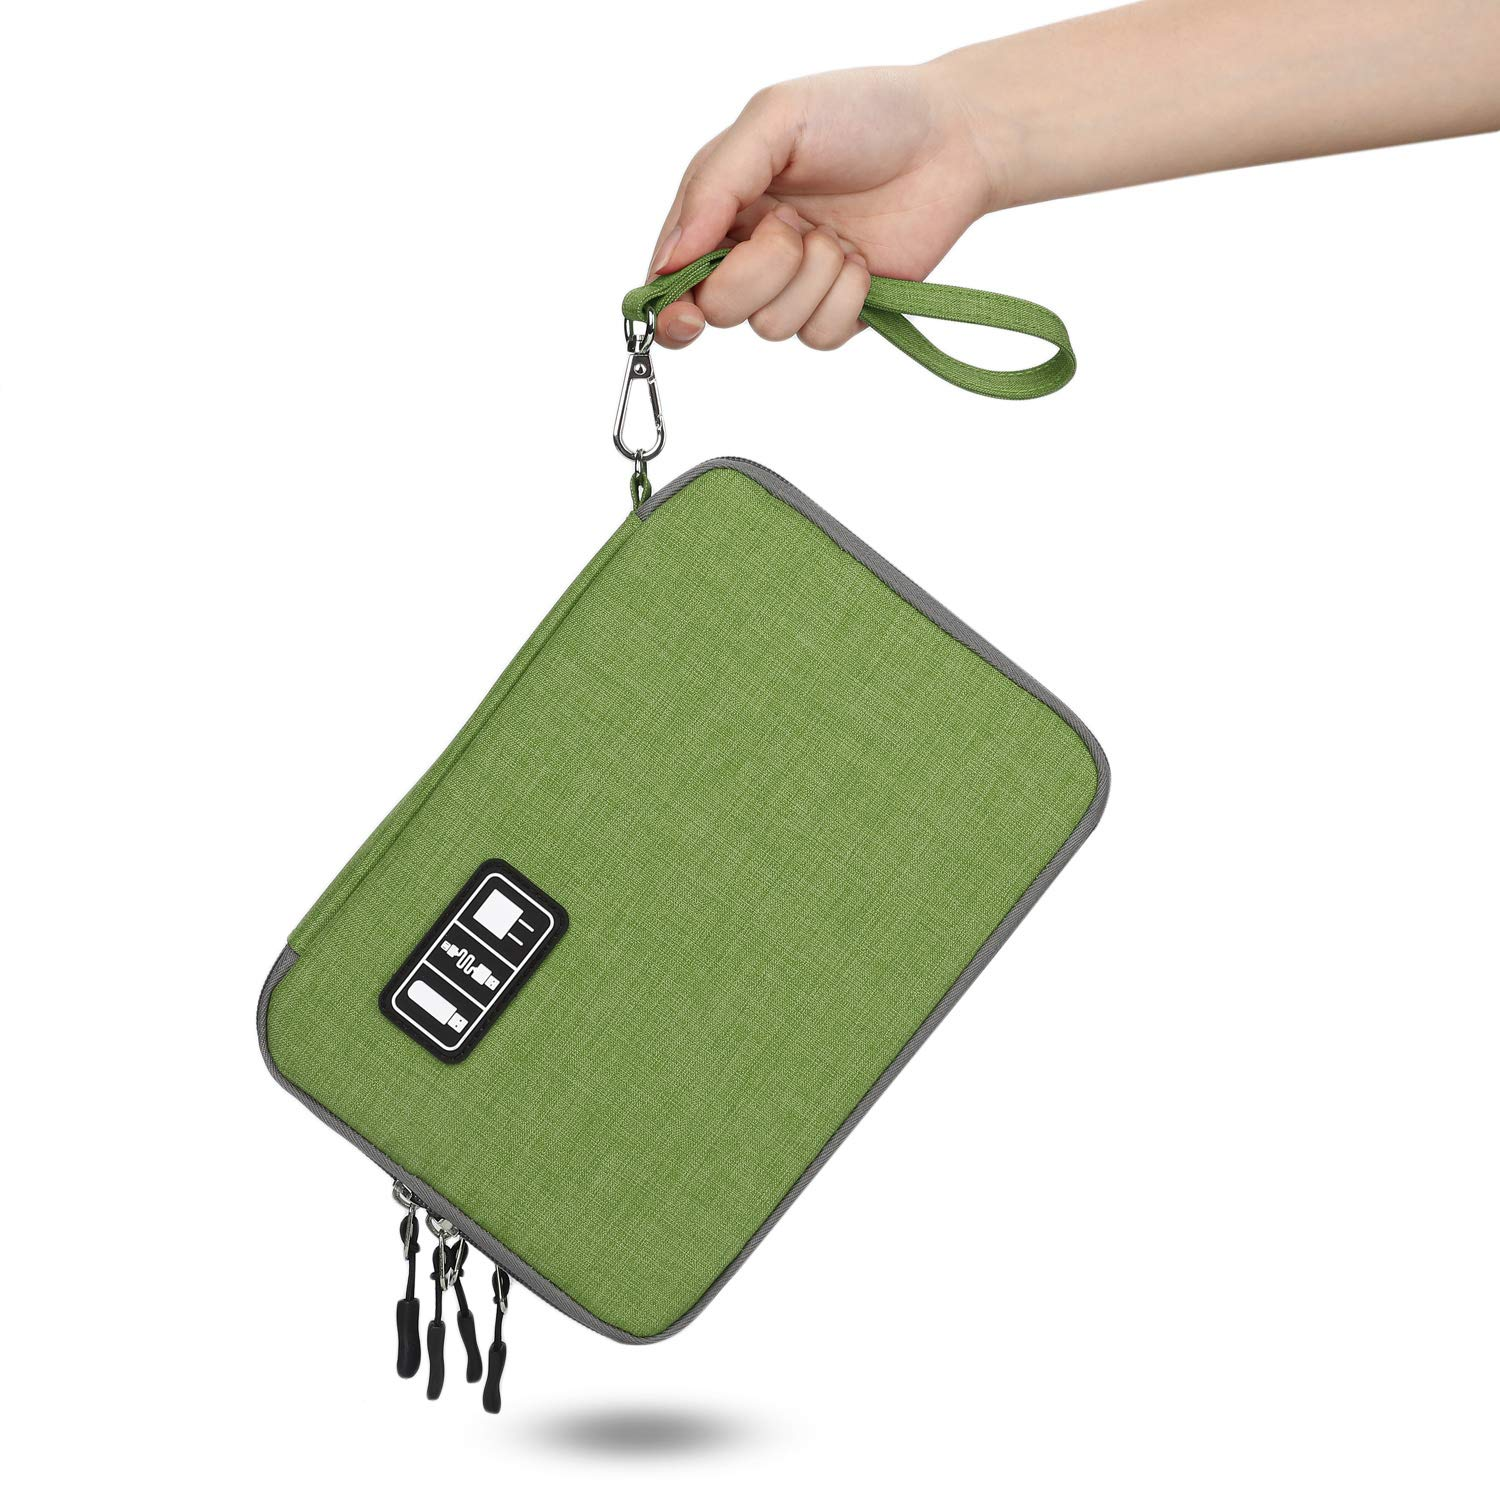 Jelly Comb Electronic Accessories Cable Organizer Bag Waterproof Travel Cable Storage Bag for Charging Cable Cellphone Peacock Blue and Orange Electronics Organizer Mini Tablet and More